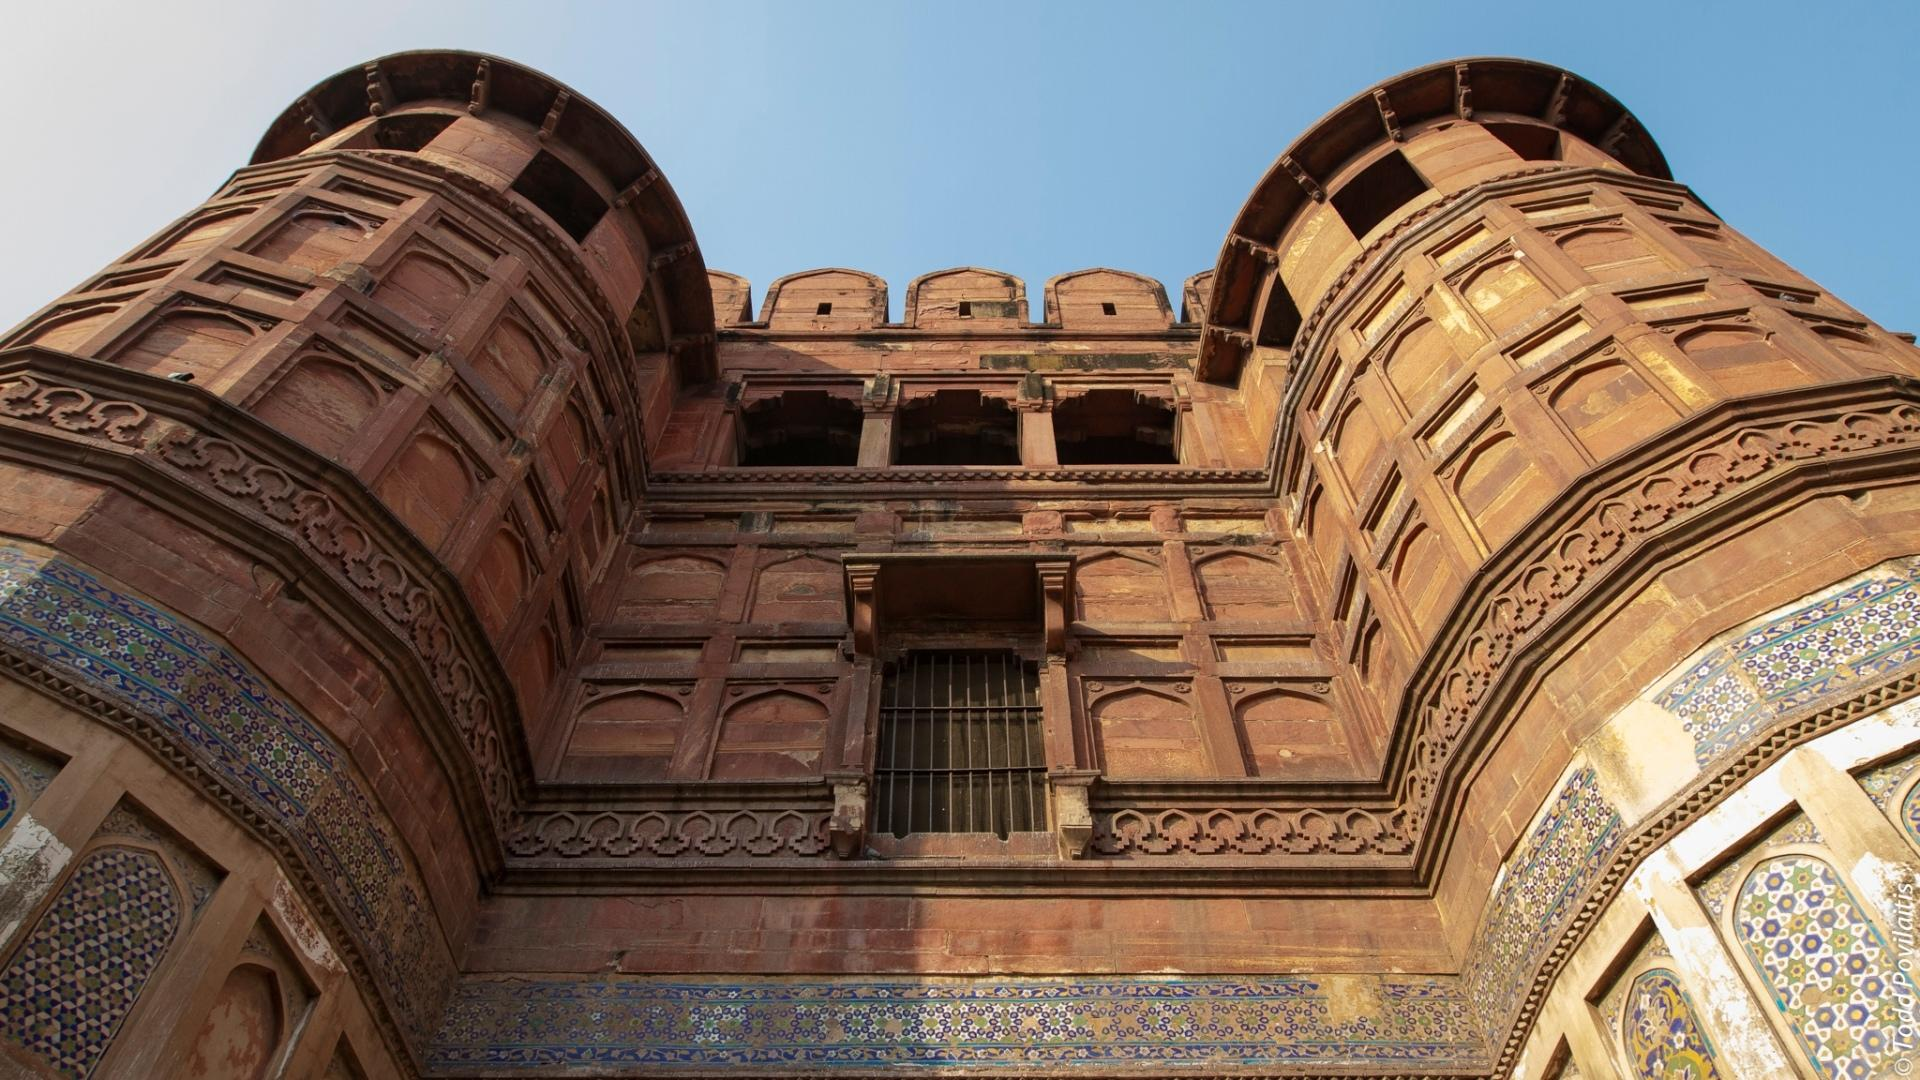 Agra Fort wallpapers HD quality